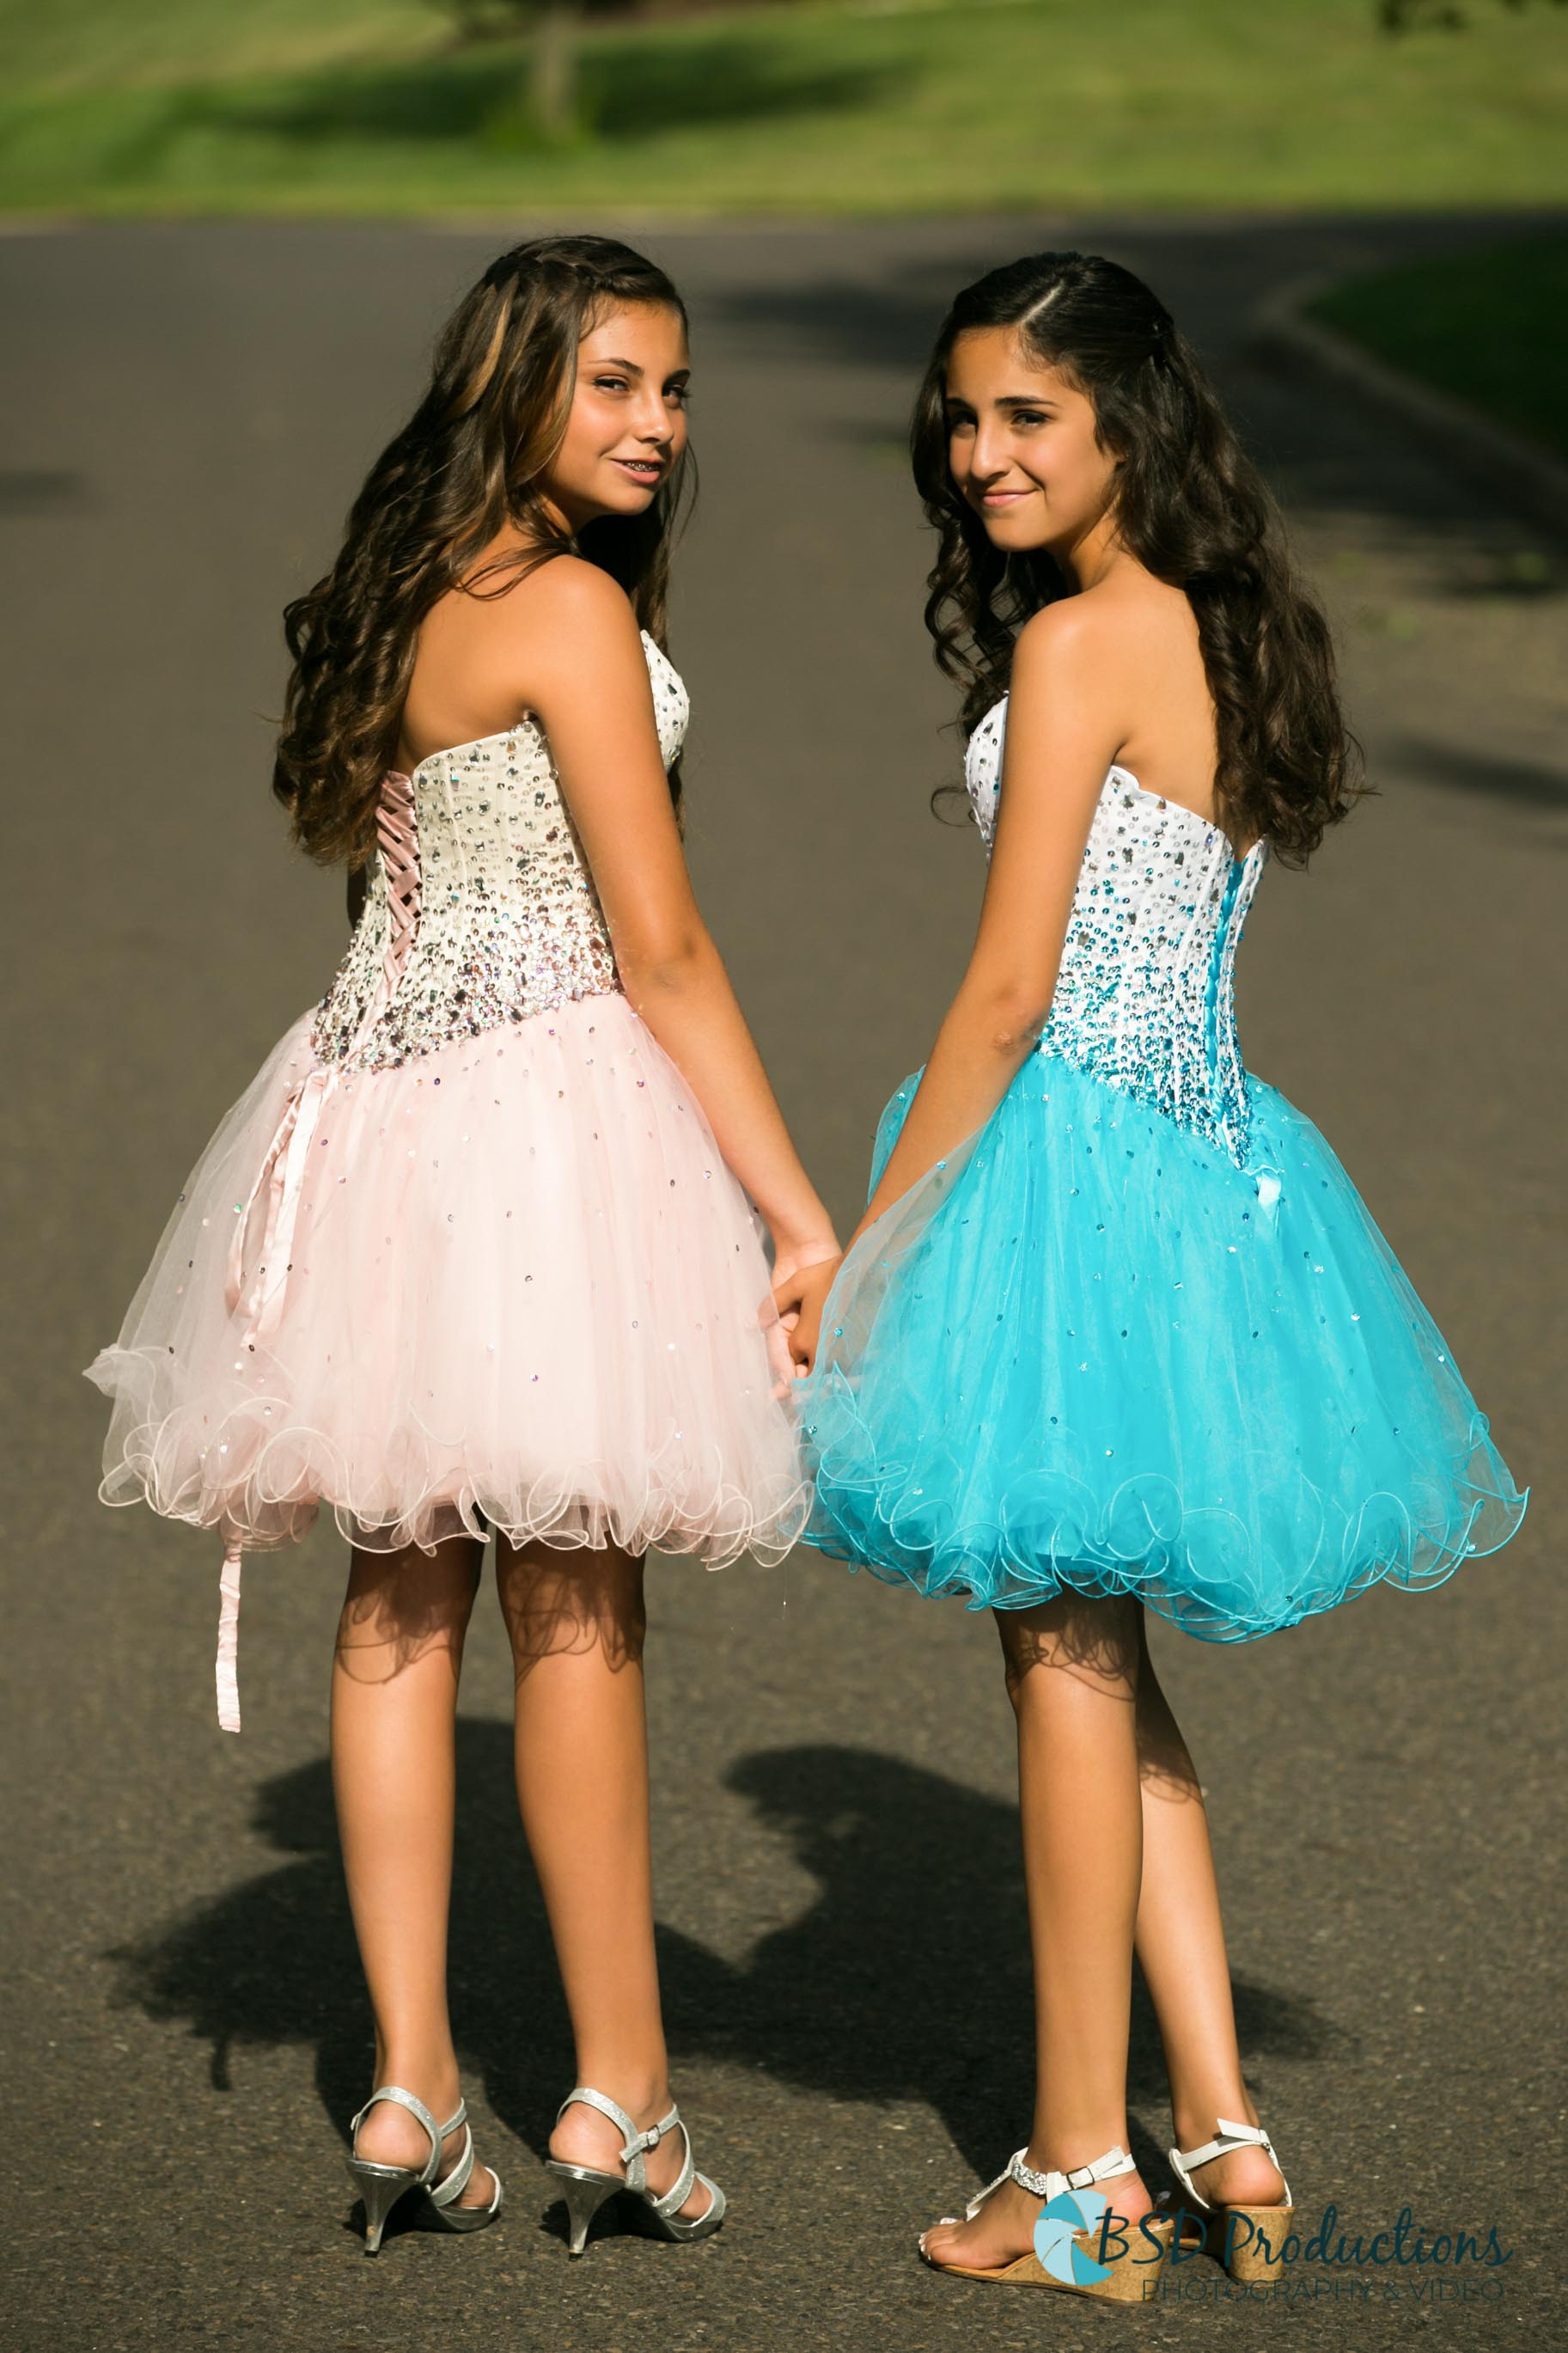 D_R_4616 Bat Mitzvah – BSD Prodcutions Photography